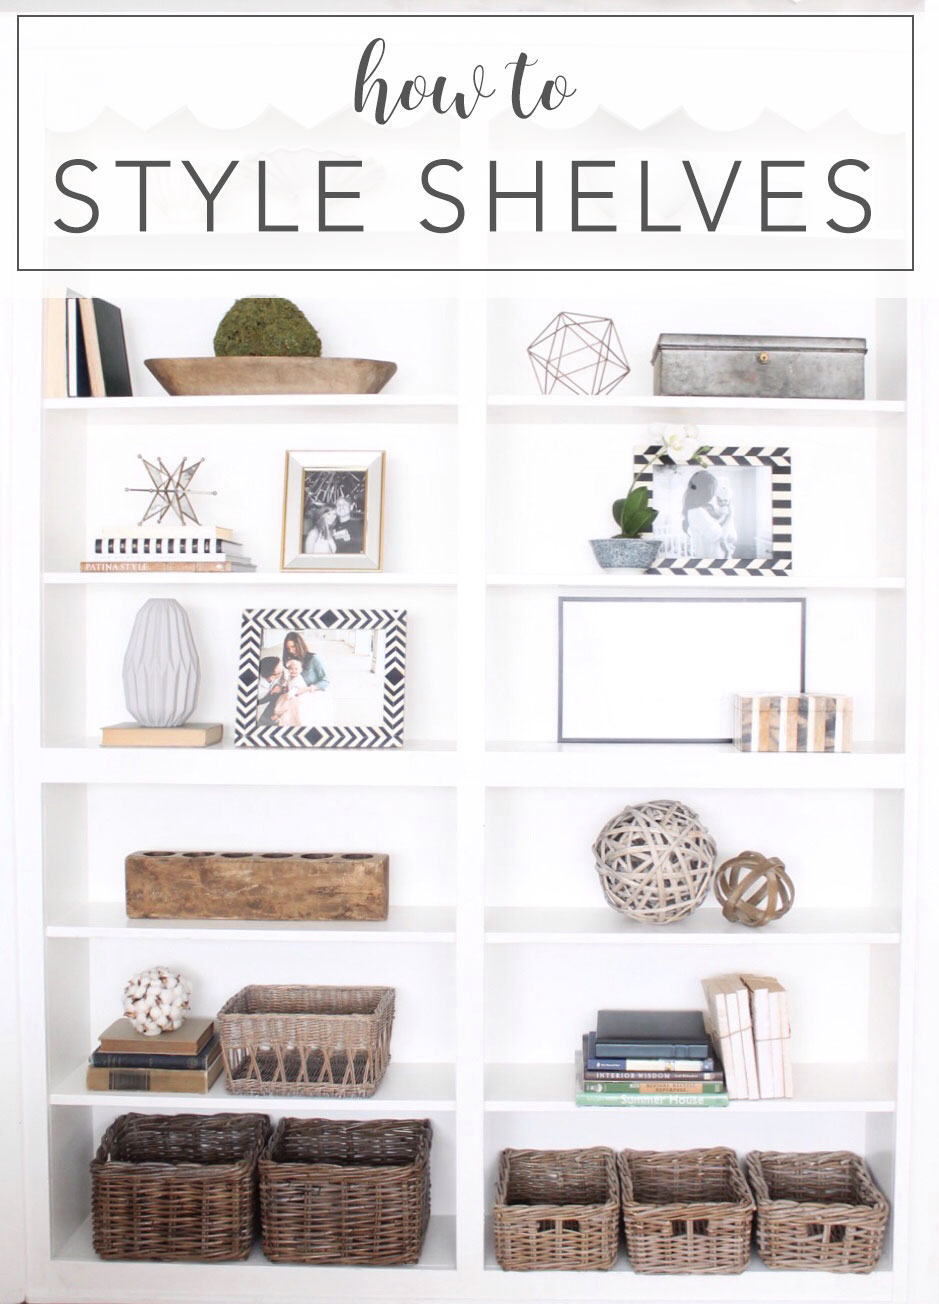 12th And White: How To Style Shelves